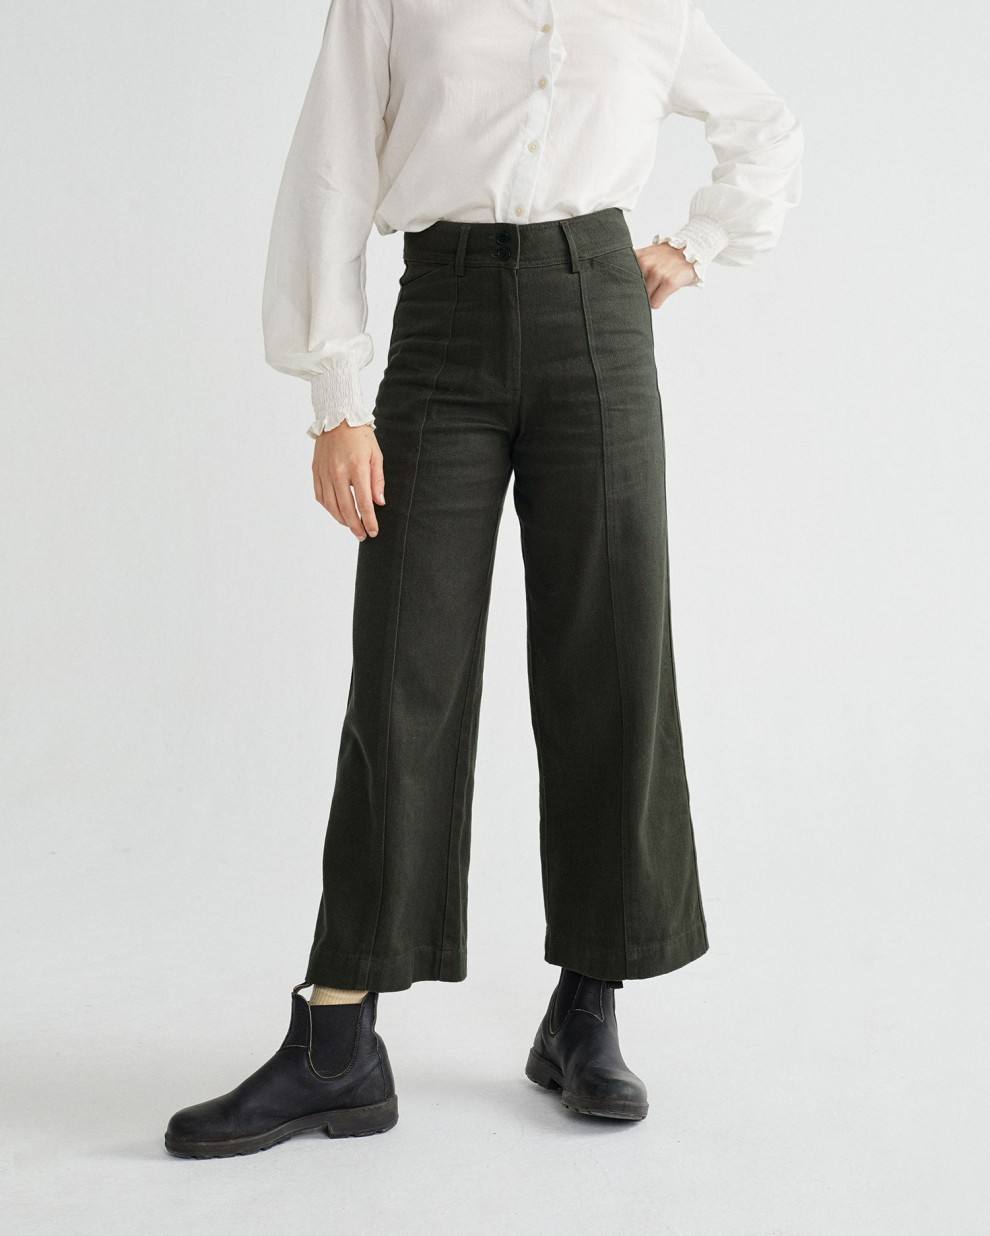 GREEN HEMP KUPALO PANTS